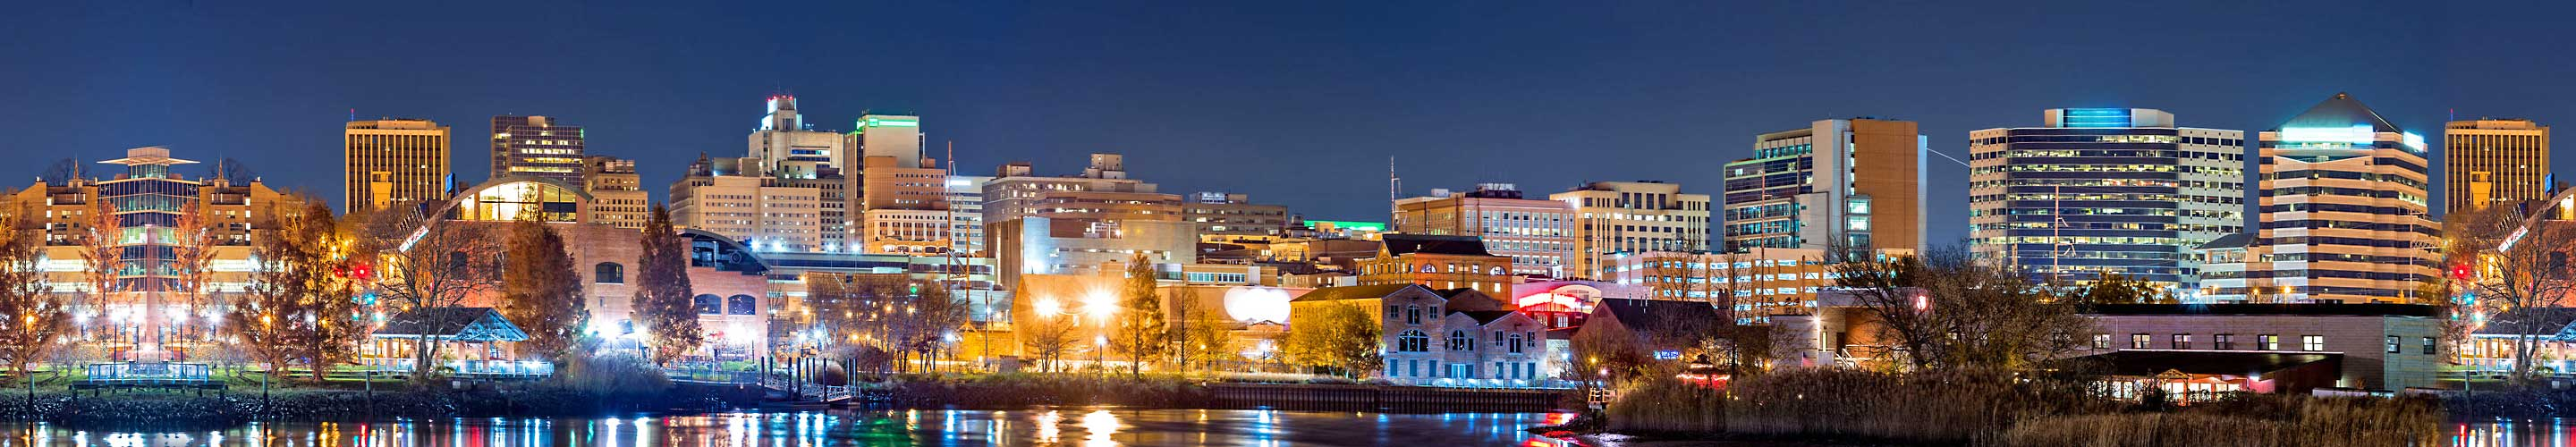 downtown wilmington at night